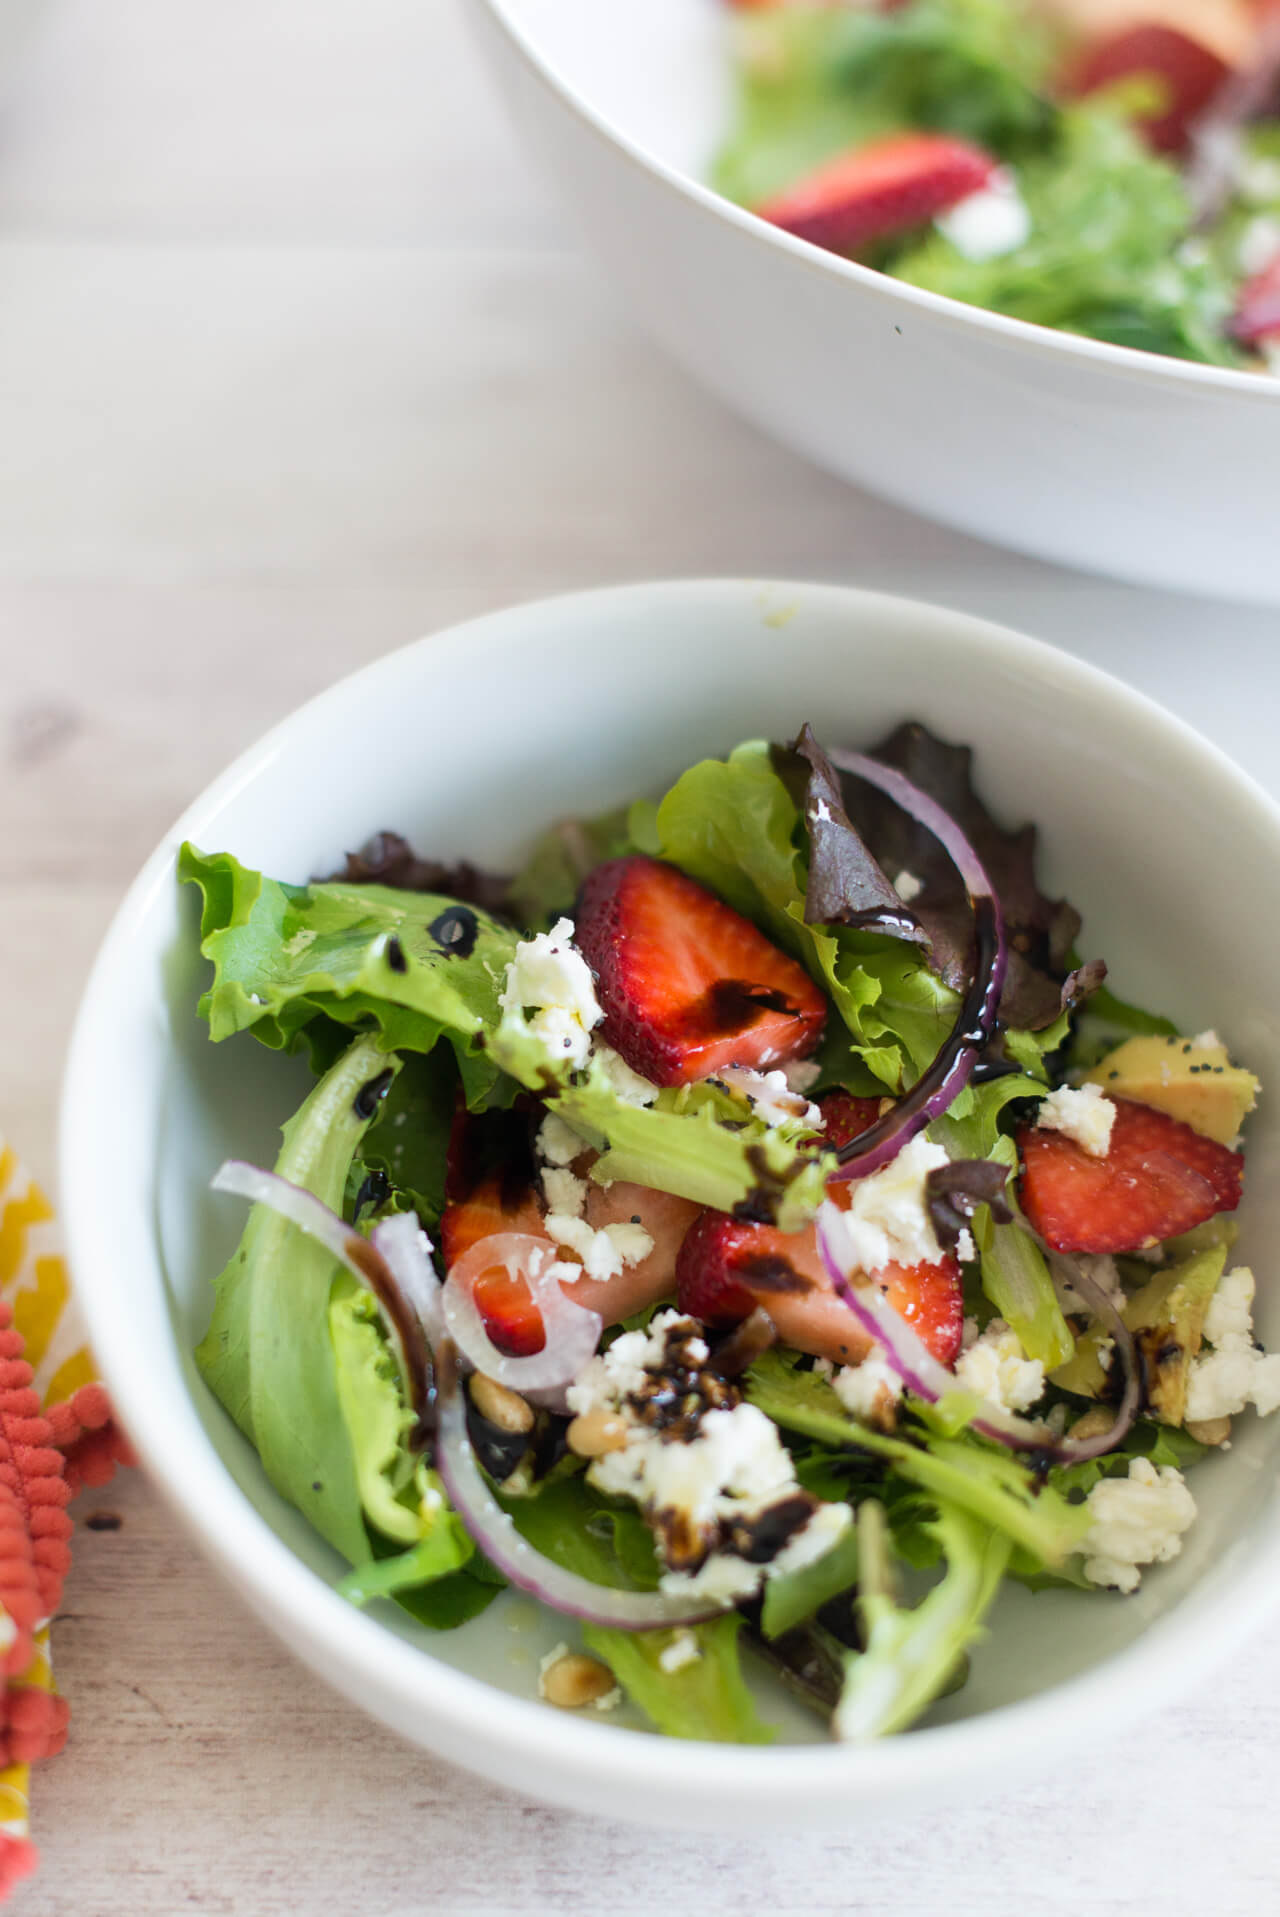 my super easy yet delicious recipe for a summer salad is now up on M Loves M